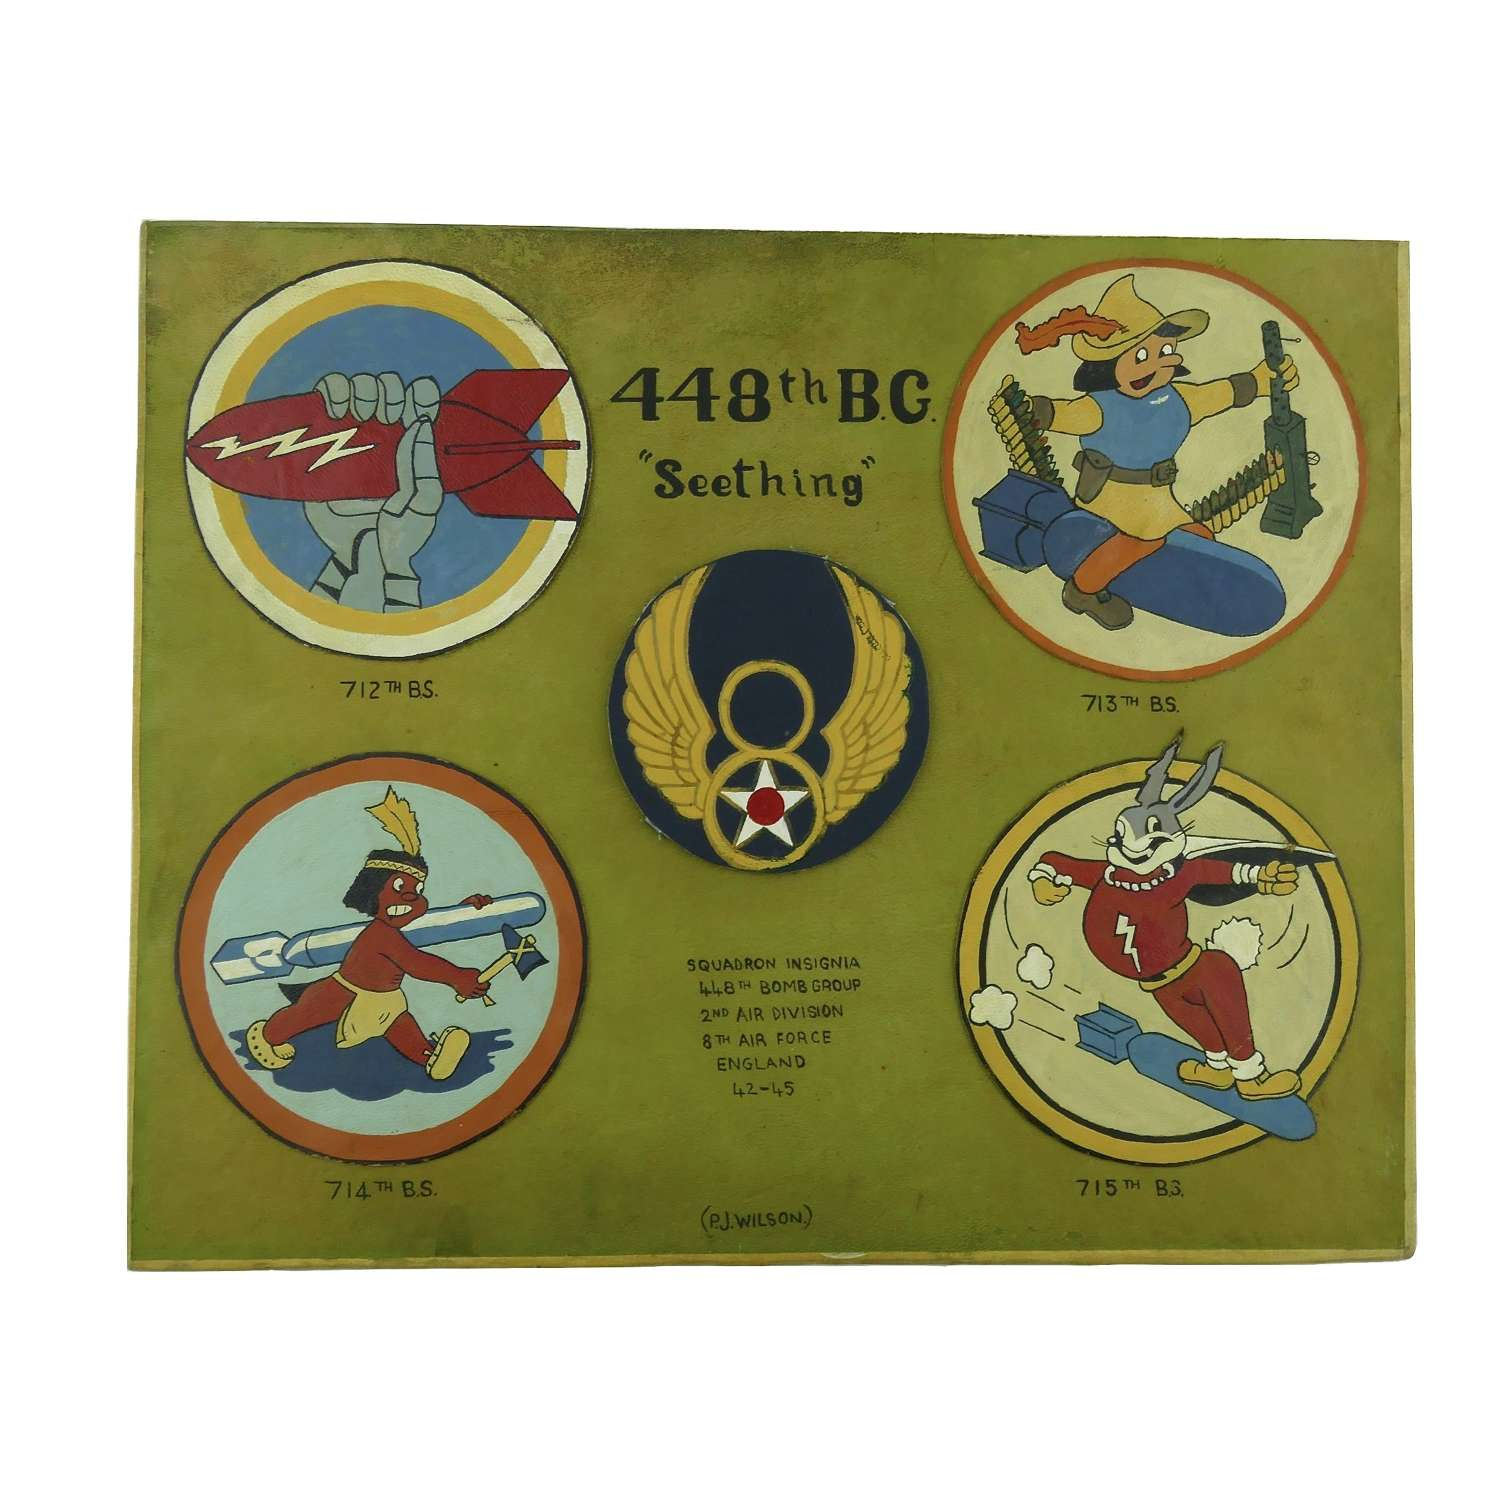 USAAF 488th BG insignia - reproduction